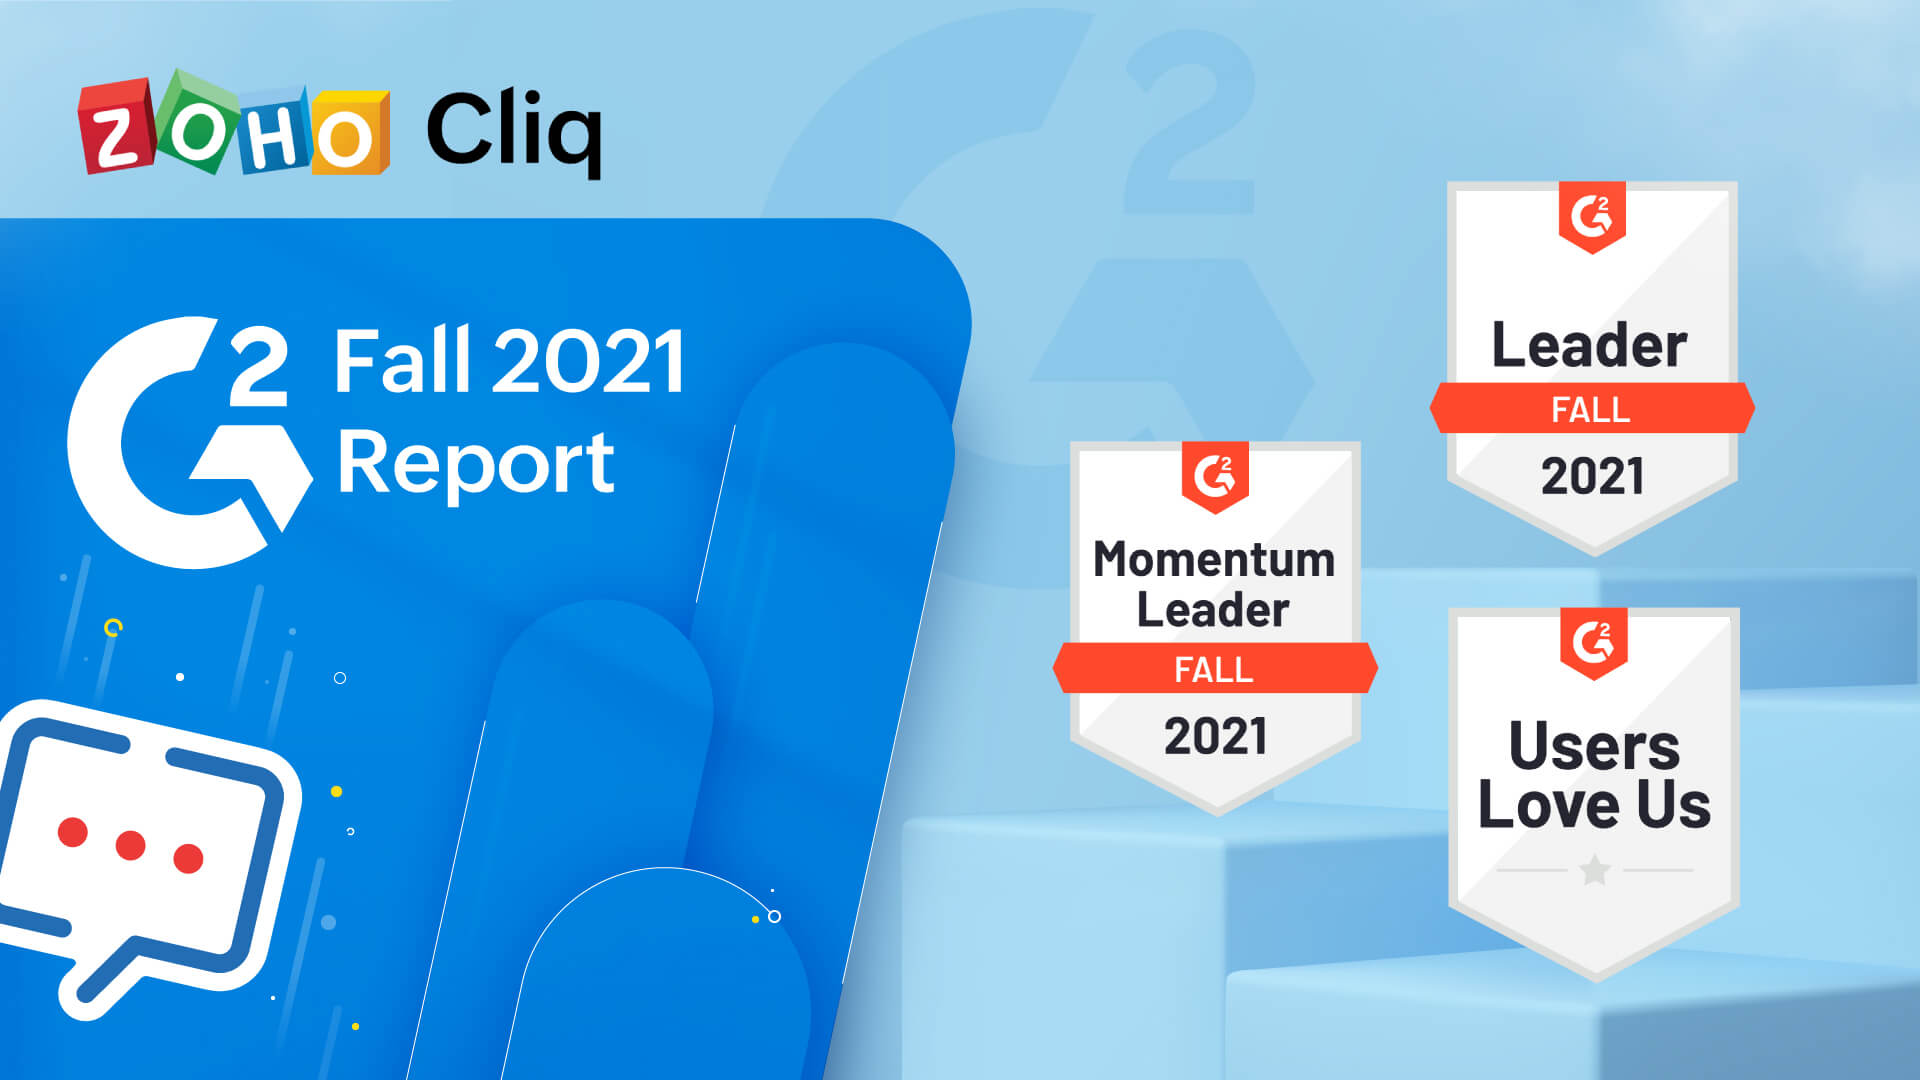 Zoho Cliq named a Leader in multiple G2 categories for fall 2021